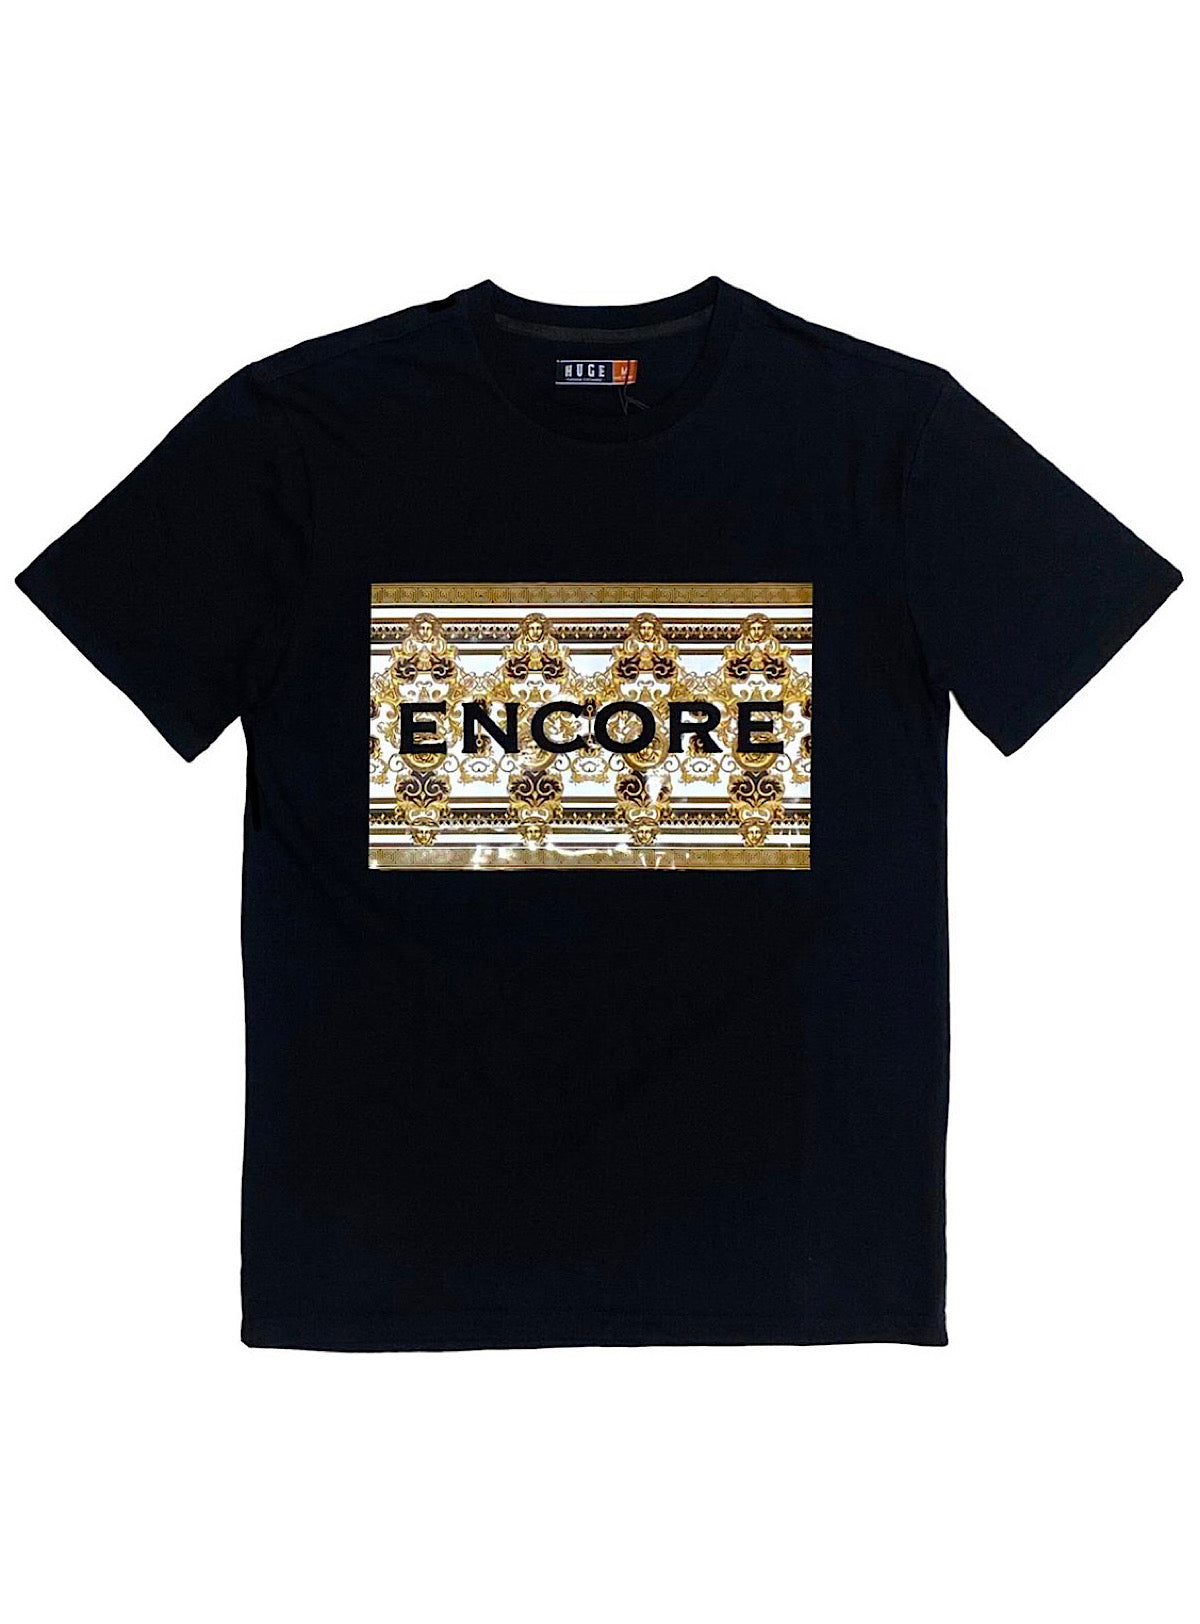 Black Pike T-Shirt - ENCORE - Black - HS0434